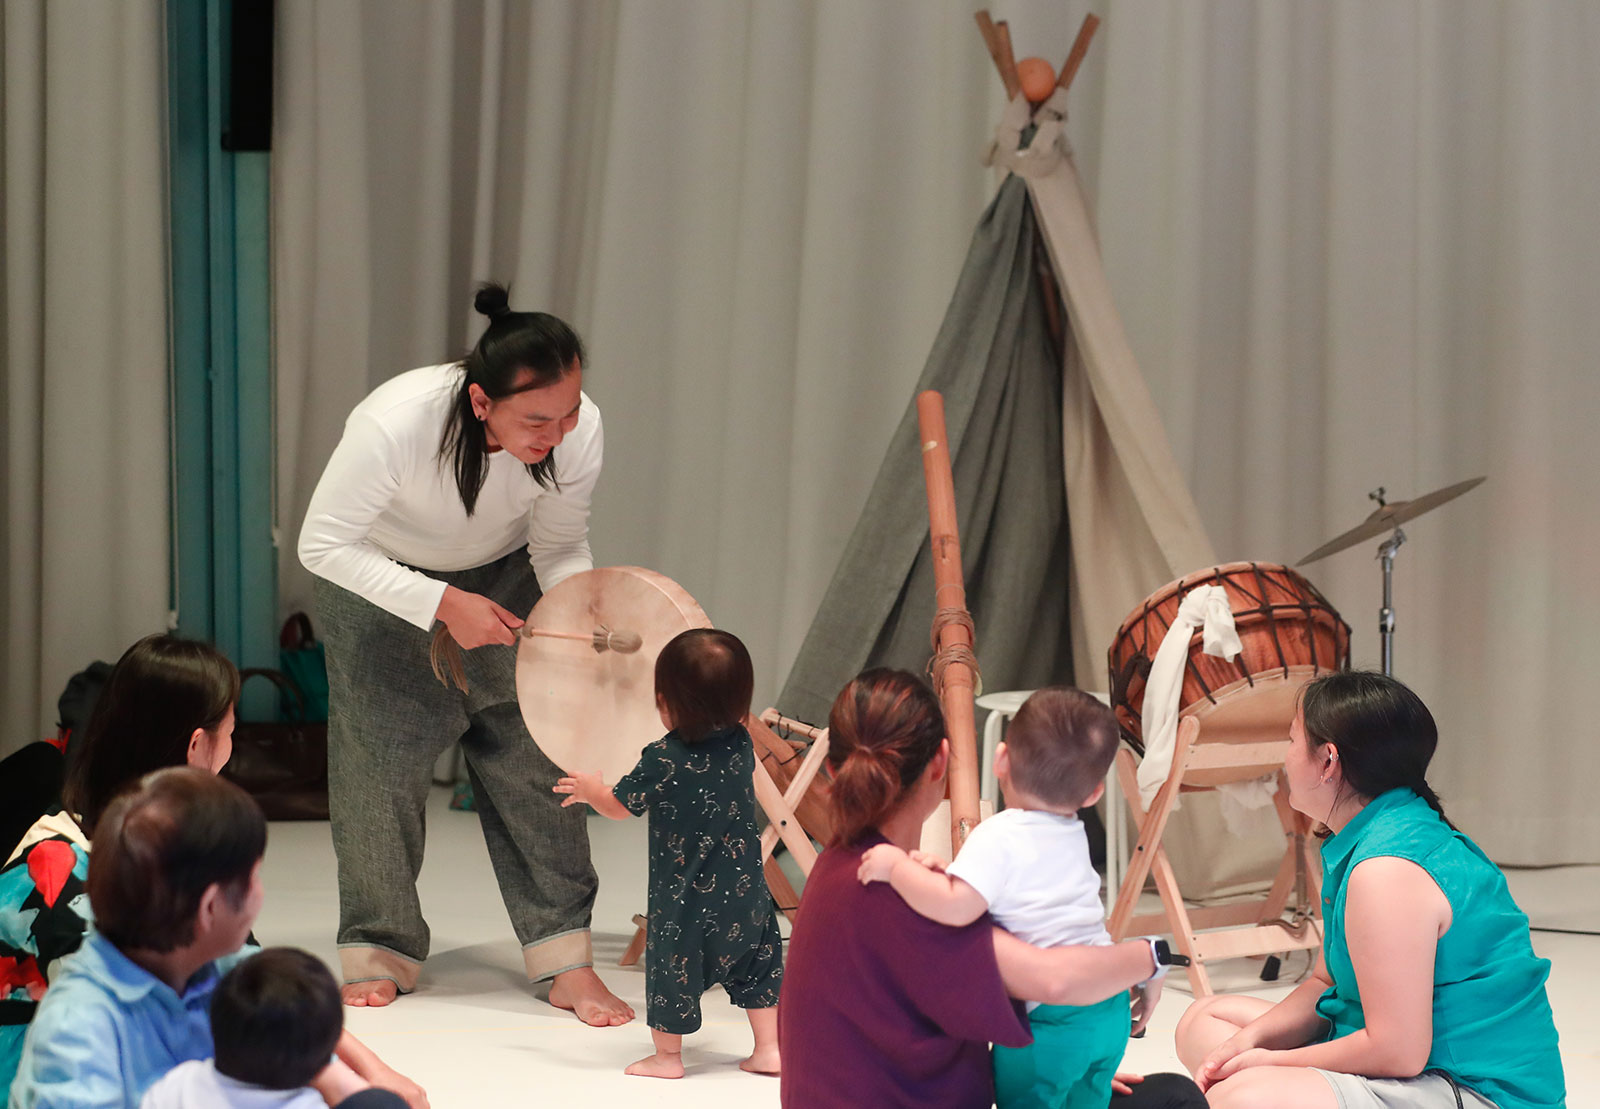 Photo from a performance of Nadam at The Artground